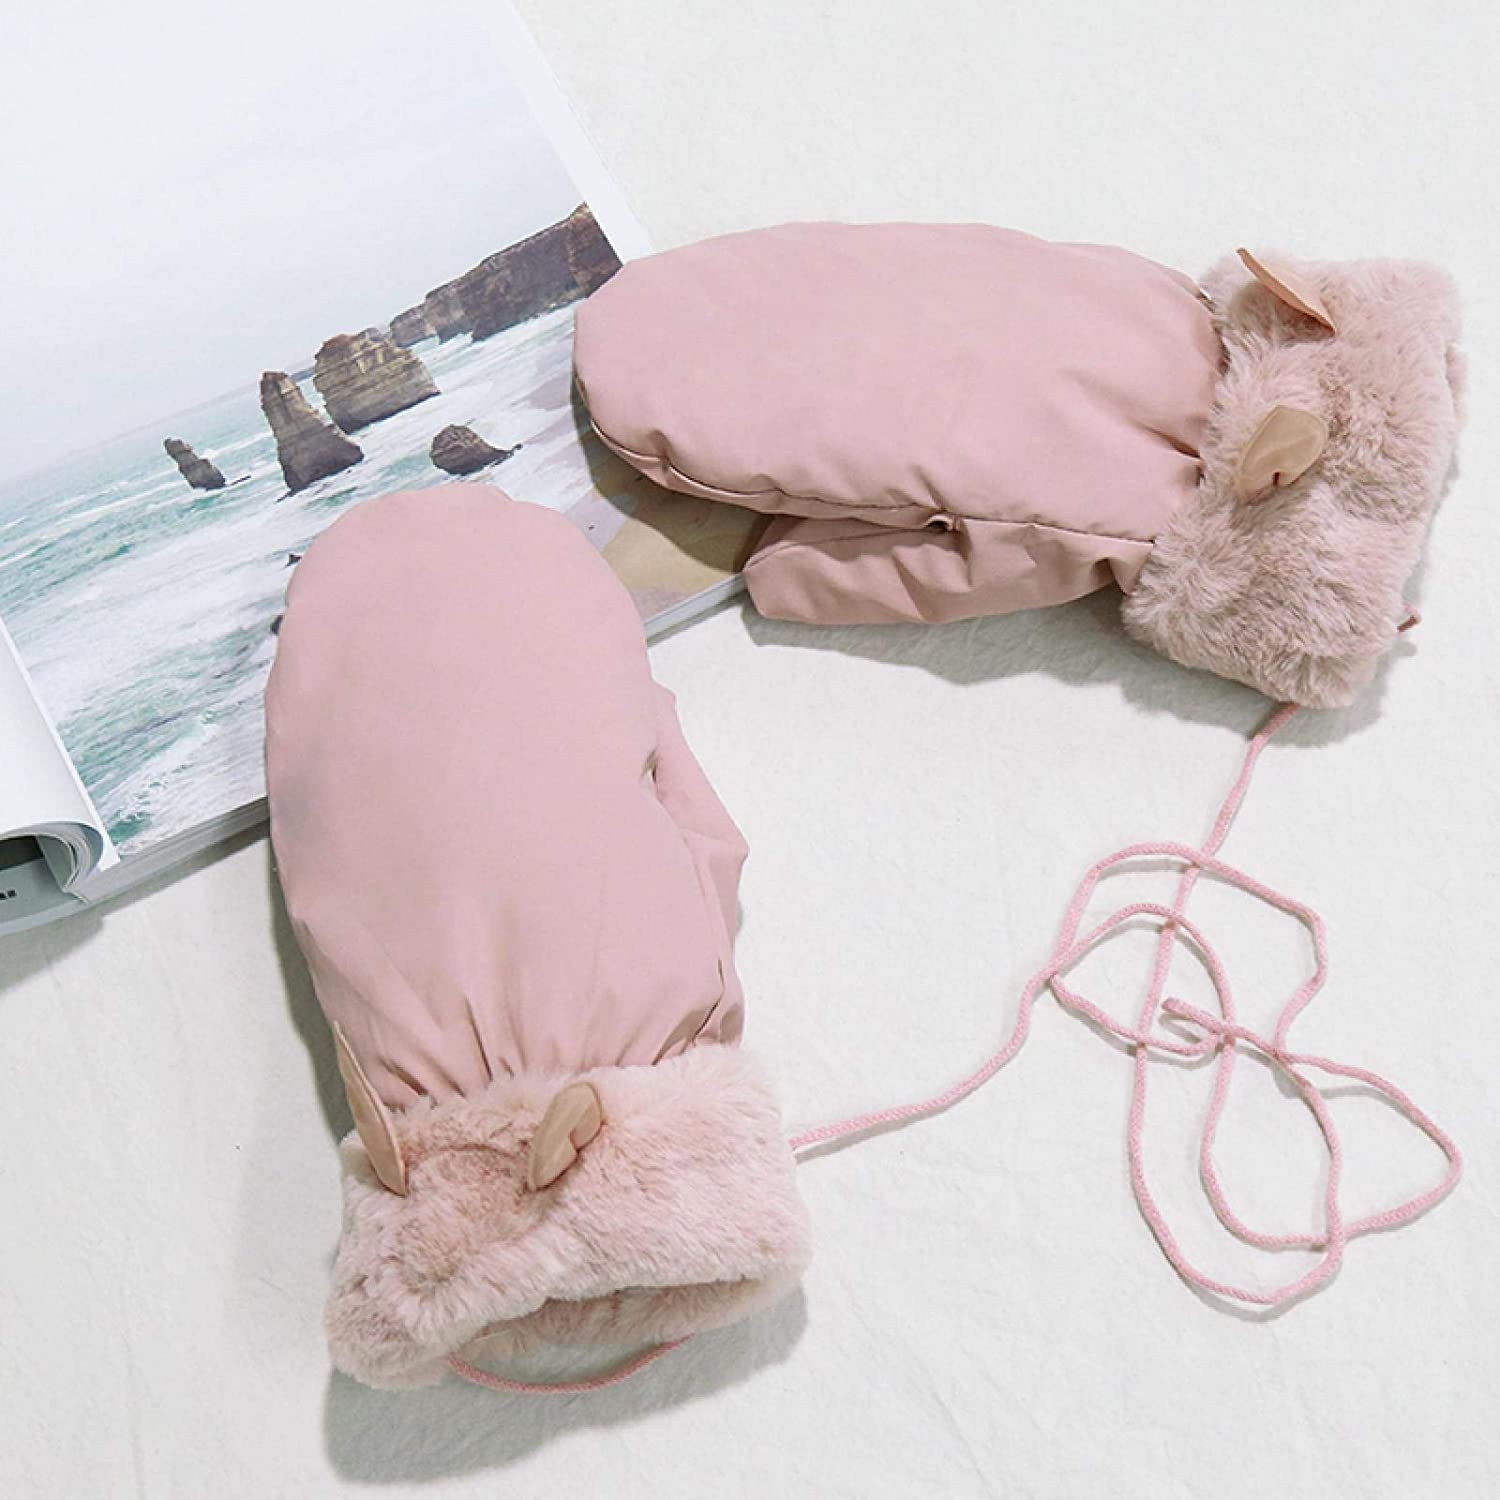 AMILIEe Winter Women's Gloves Cute Cycling with Cold and Windproof Down Cotton Winter Plus Velvet Thick Warm Gloves 均码 可爱小耳朵一粉色